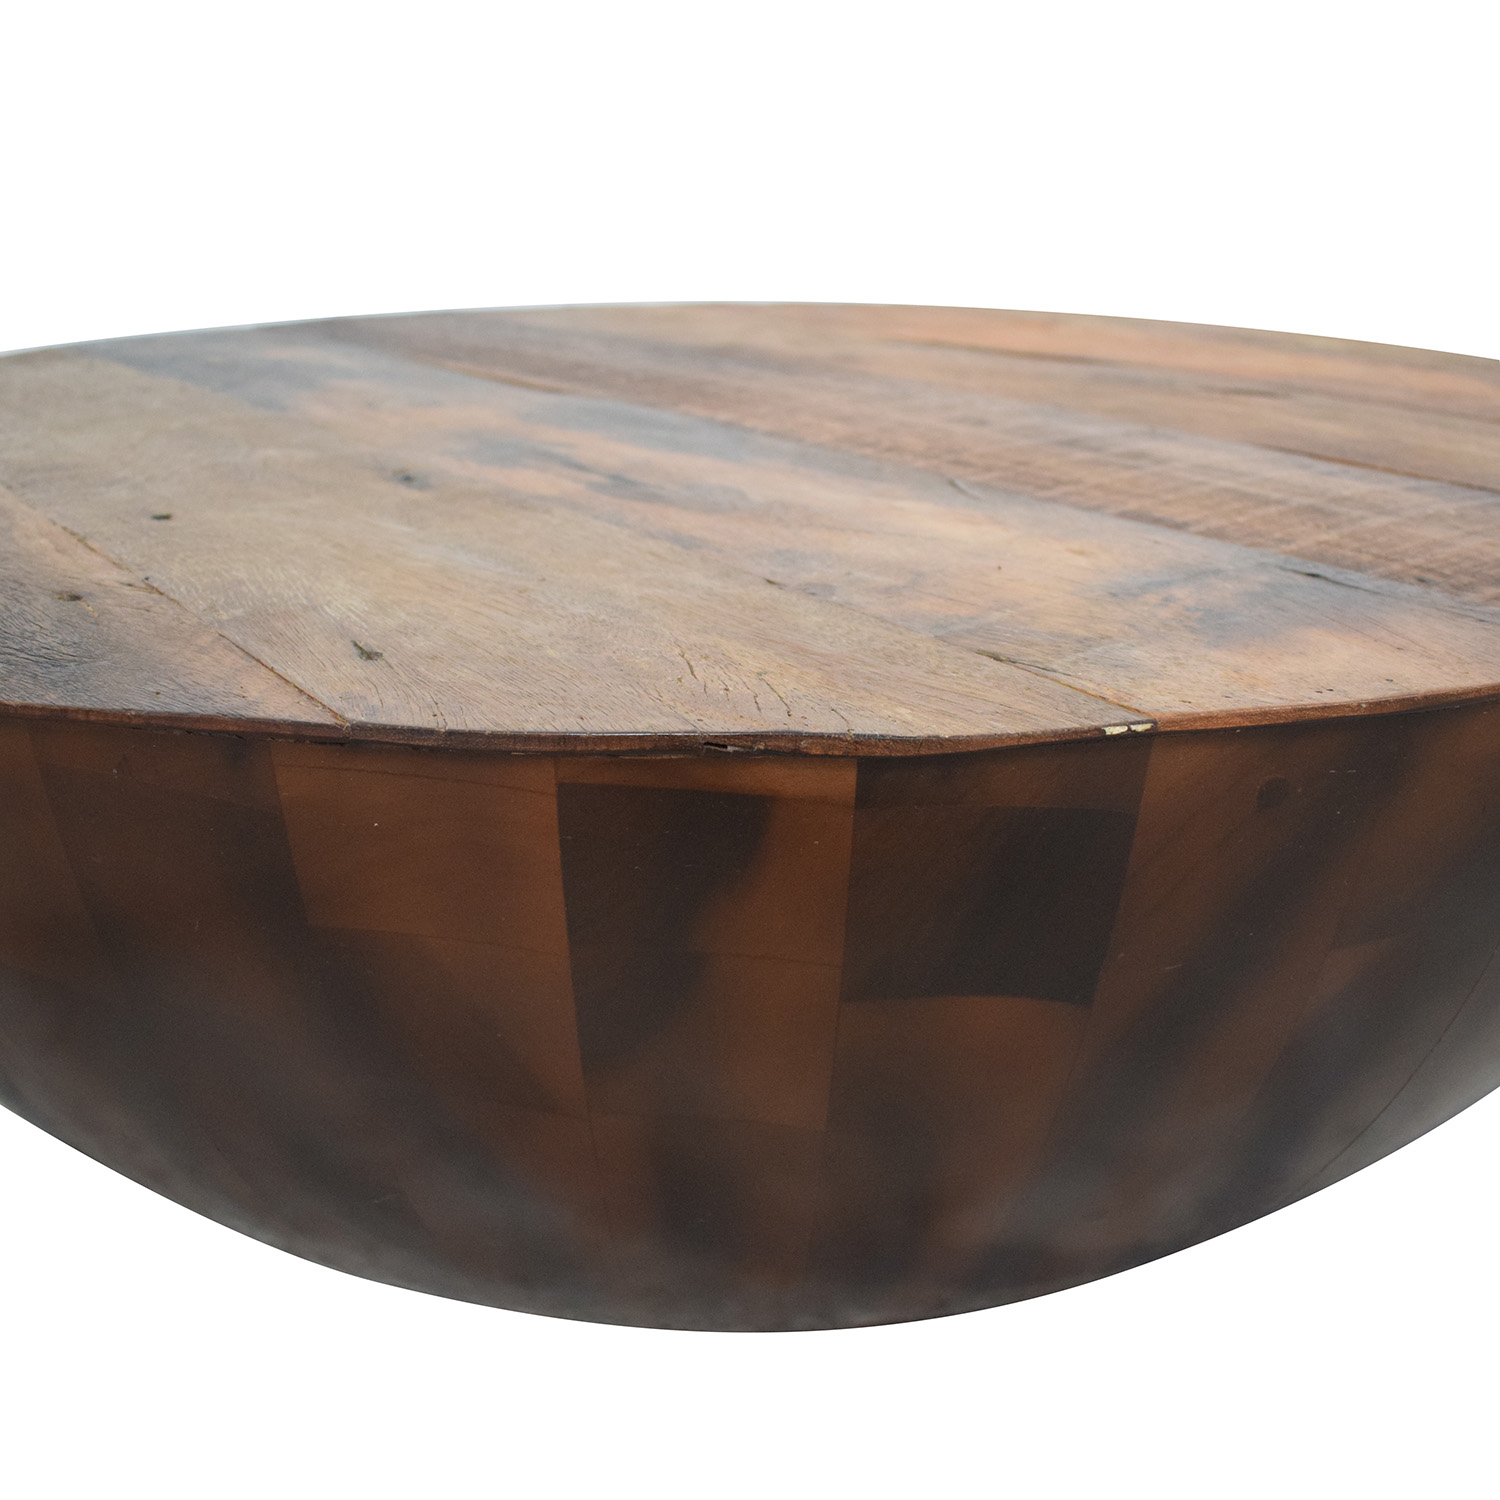 Anthropologie Semisfera Coffee Table / Coffee Tables